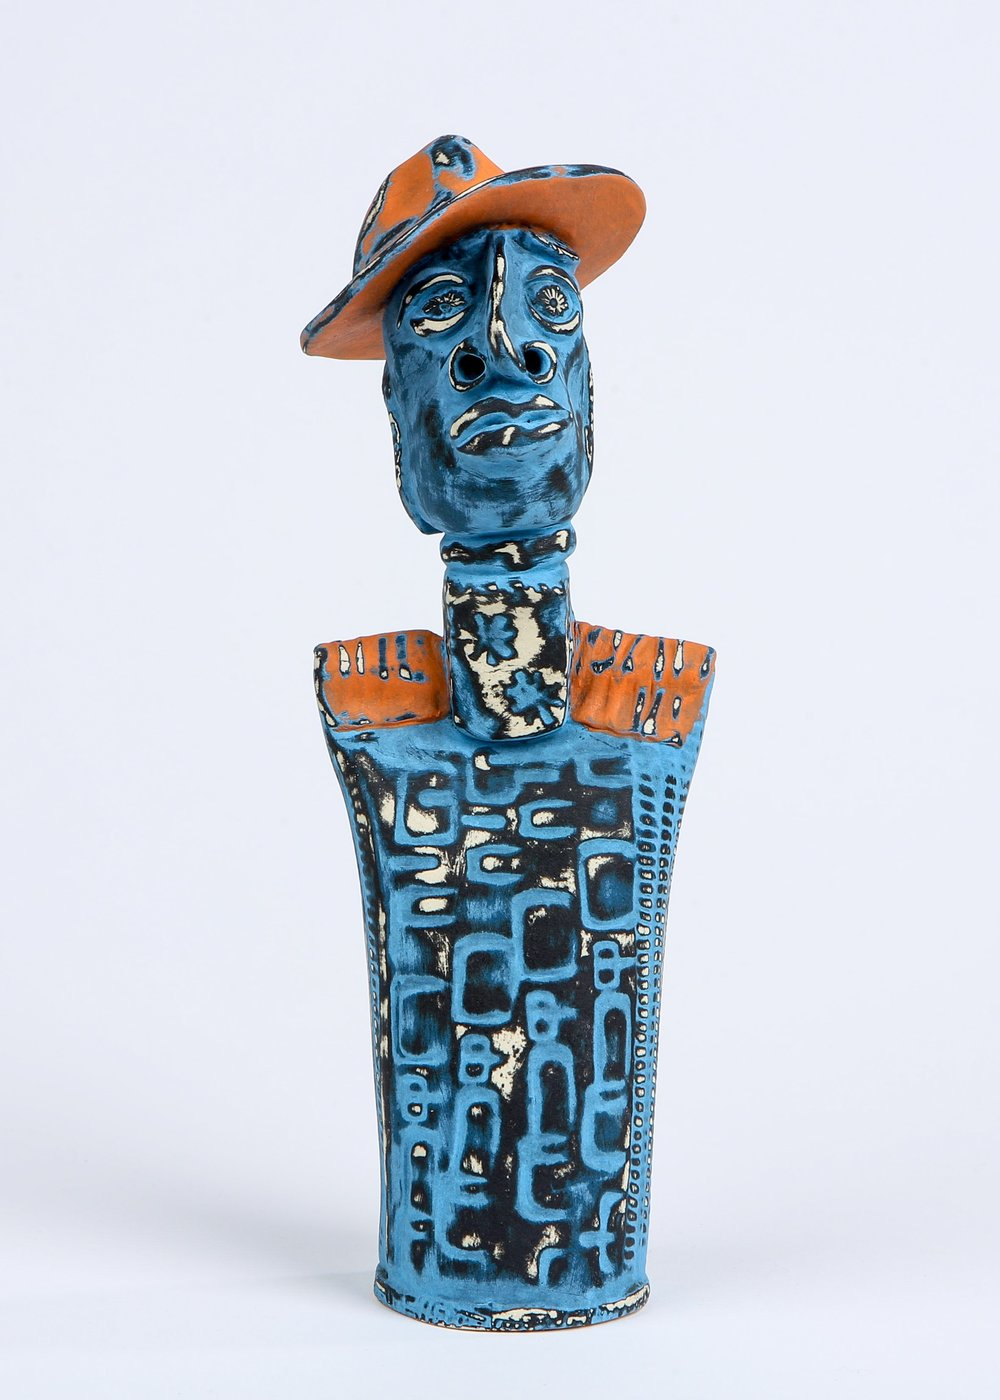 """Peppajack"" by Sharon Ramick, ceramic, 3.5x11x3.5in, 2017, POR"